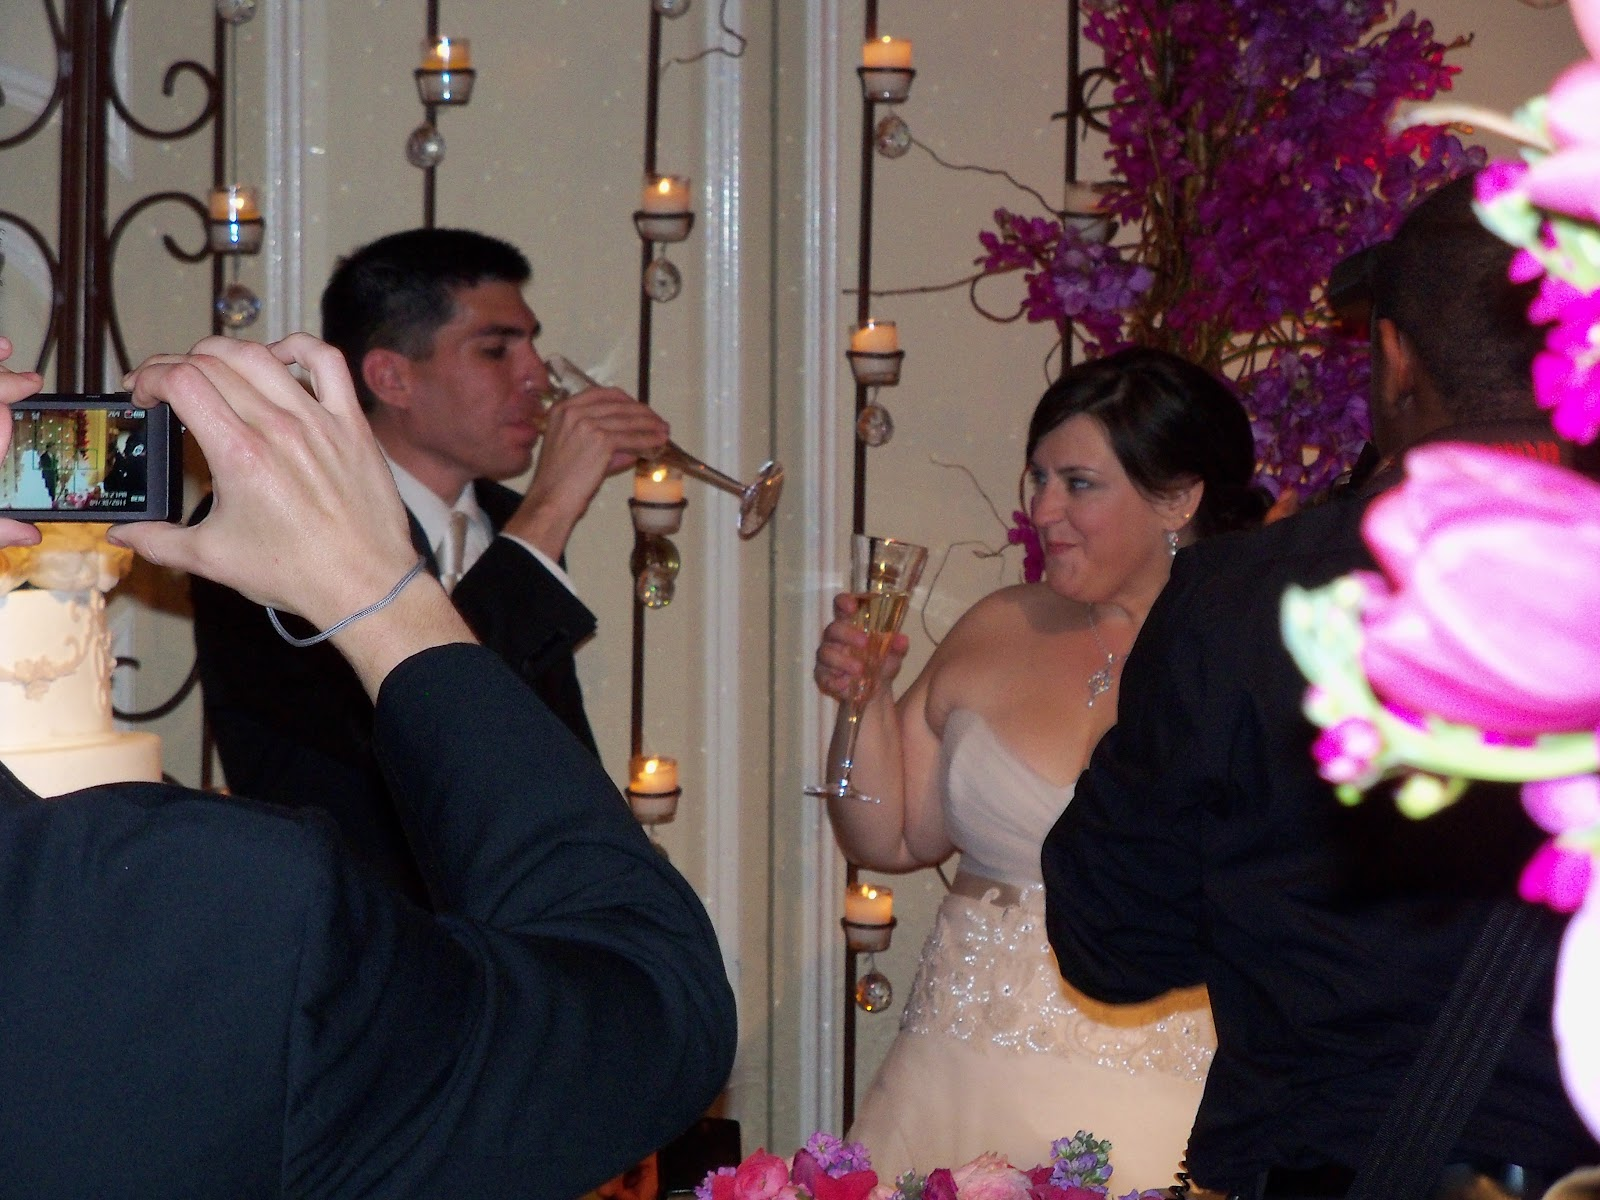 Megan Neal and Mark Suarez wedding - 100_8396.JPG